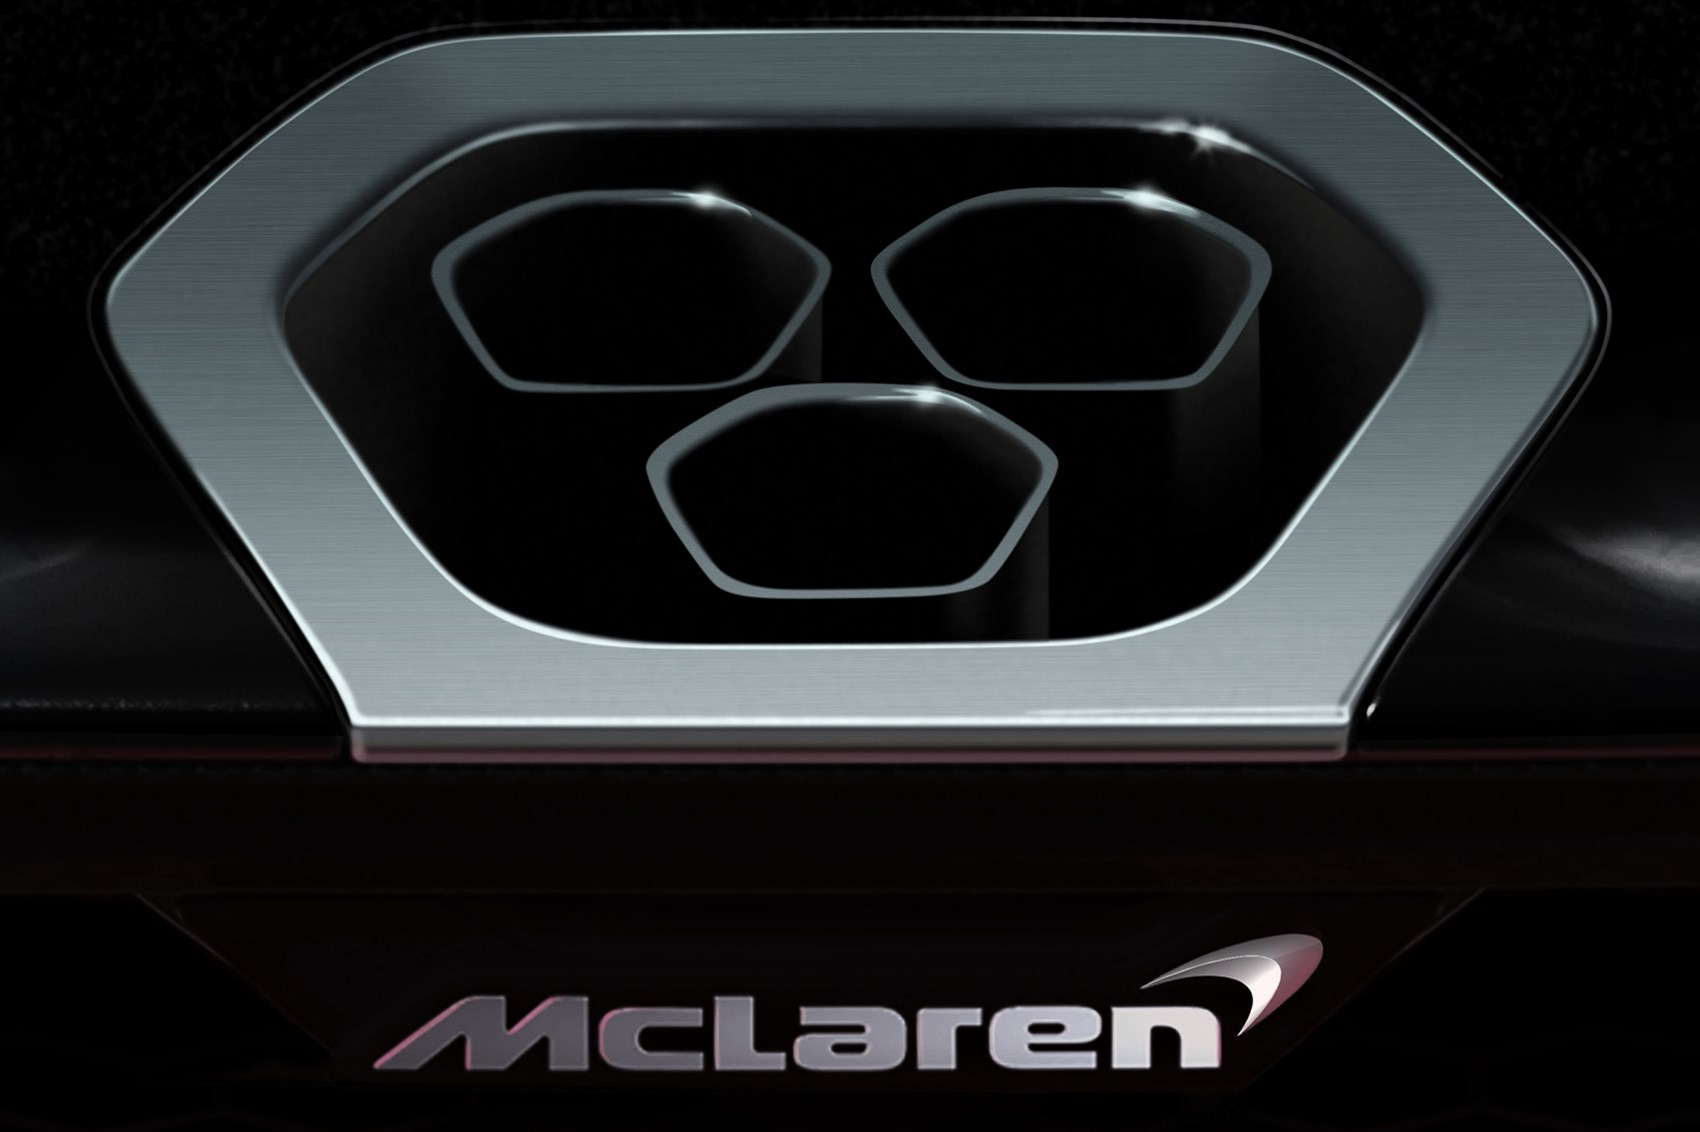 McLaren's new ultimate track vehicle will be here in the spring